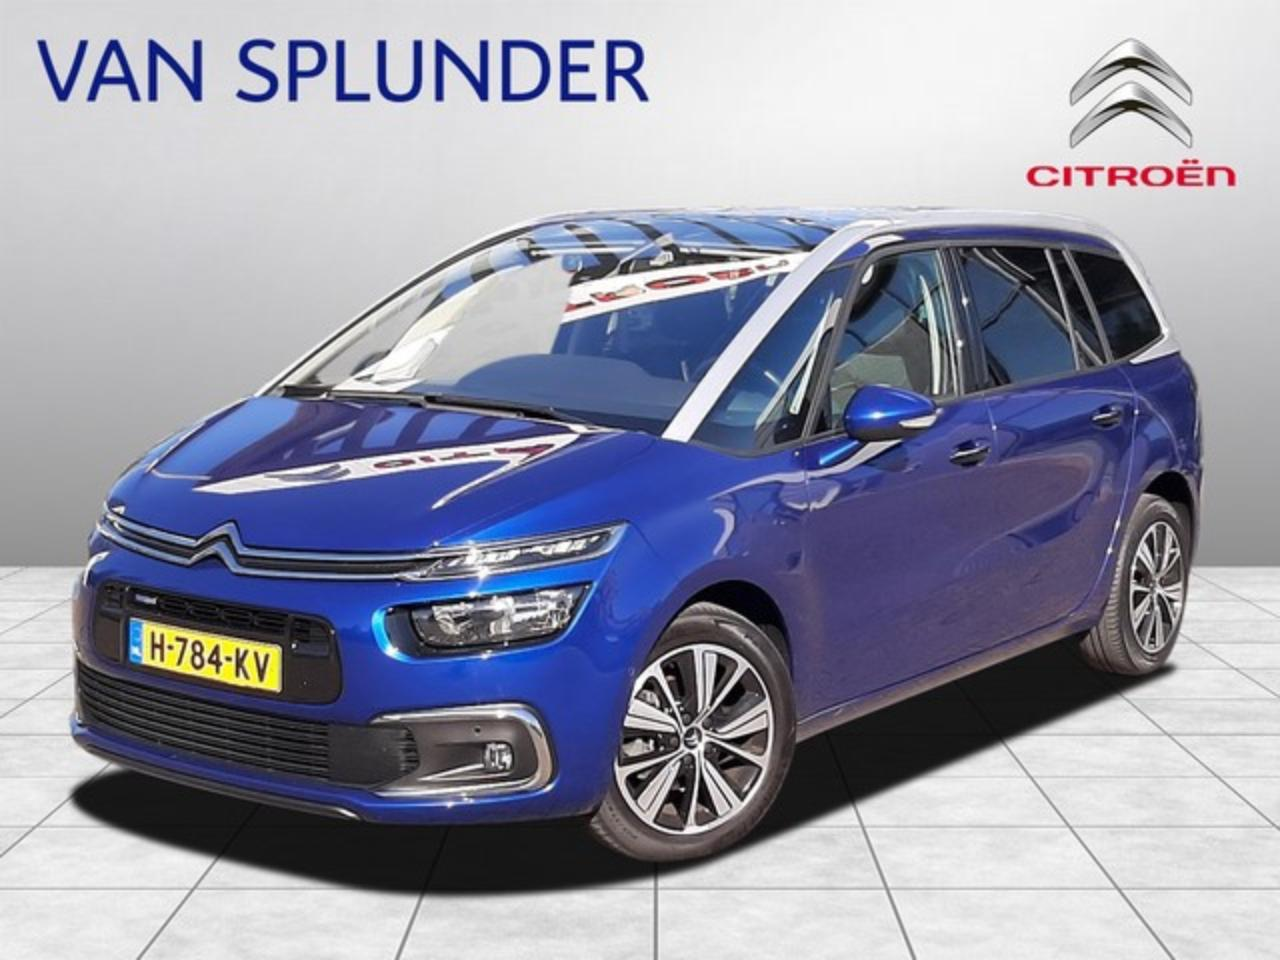 Citroën C4 Grand Picasso GRAND C4 PICASSO 130pk Feel automaat 7 persoons navigatie